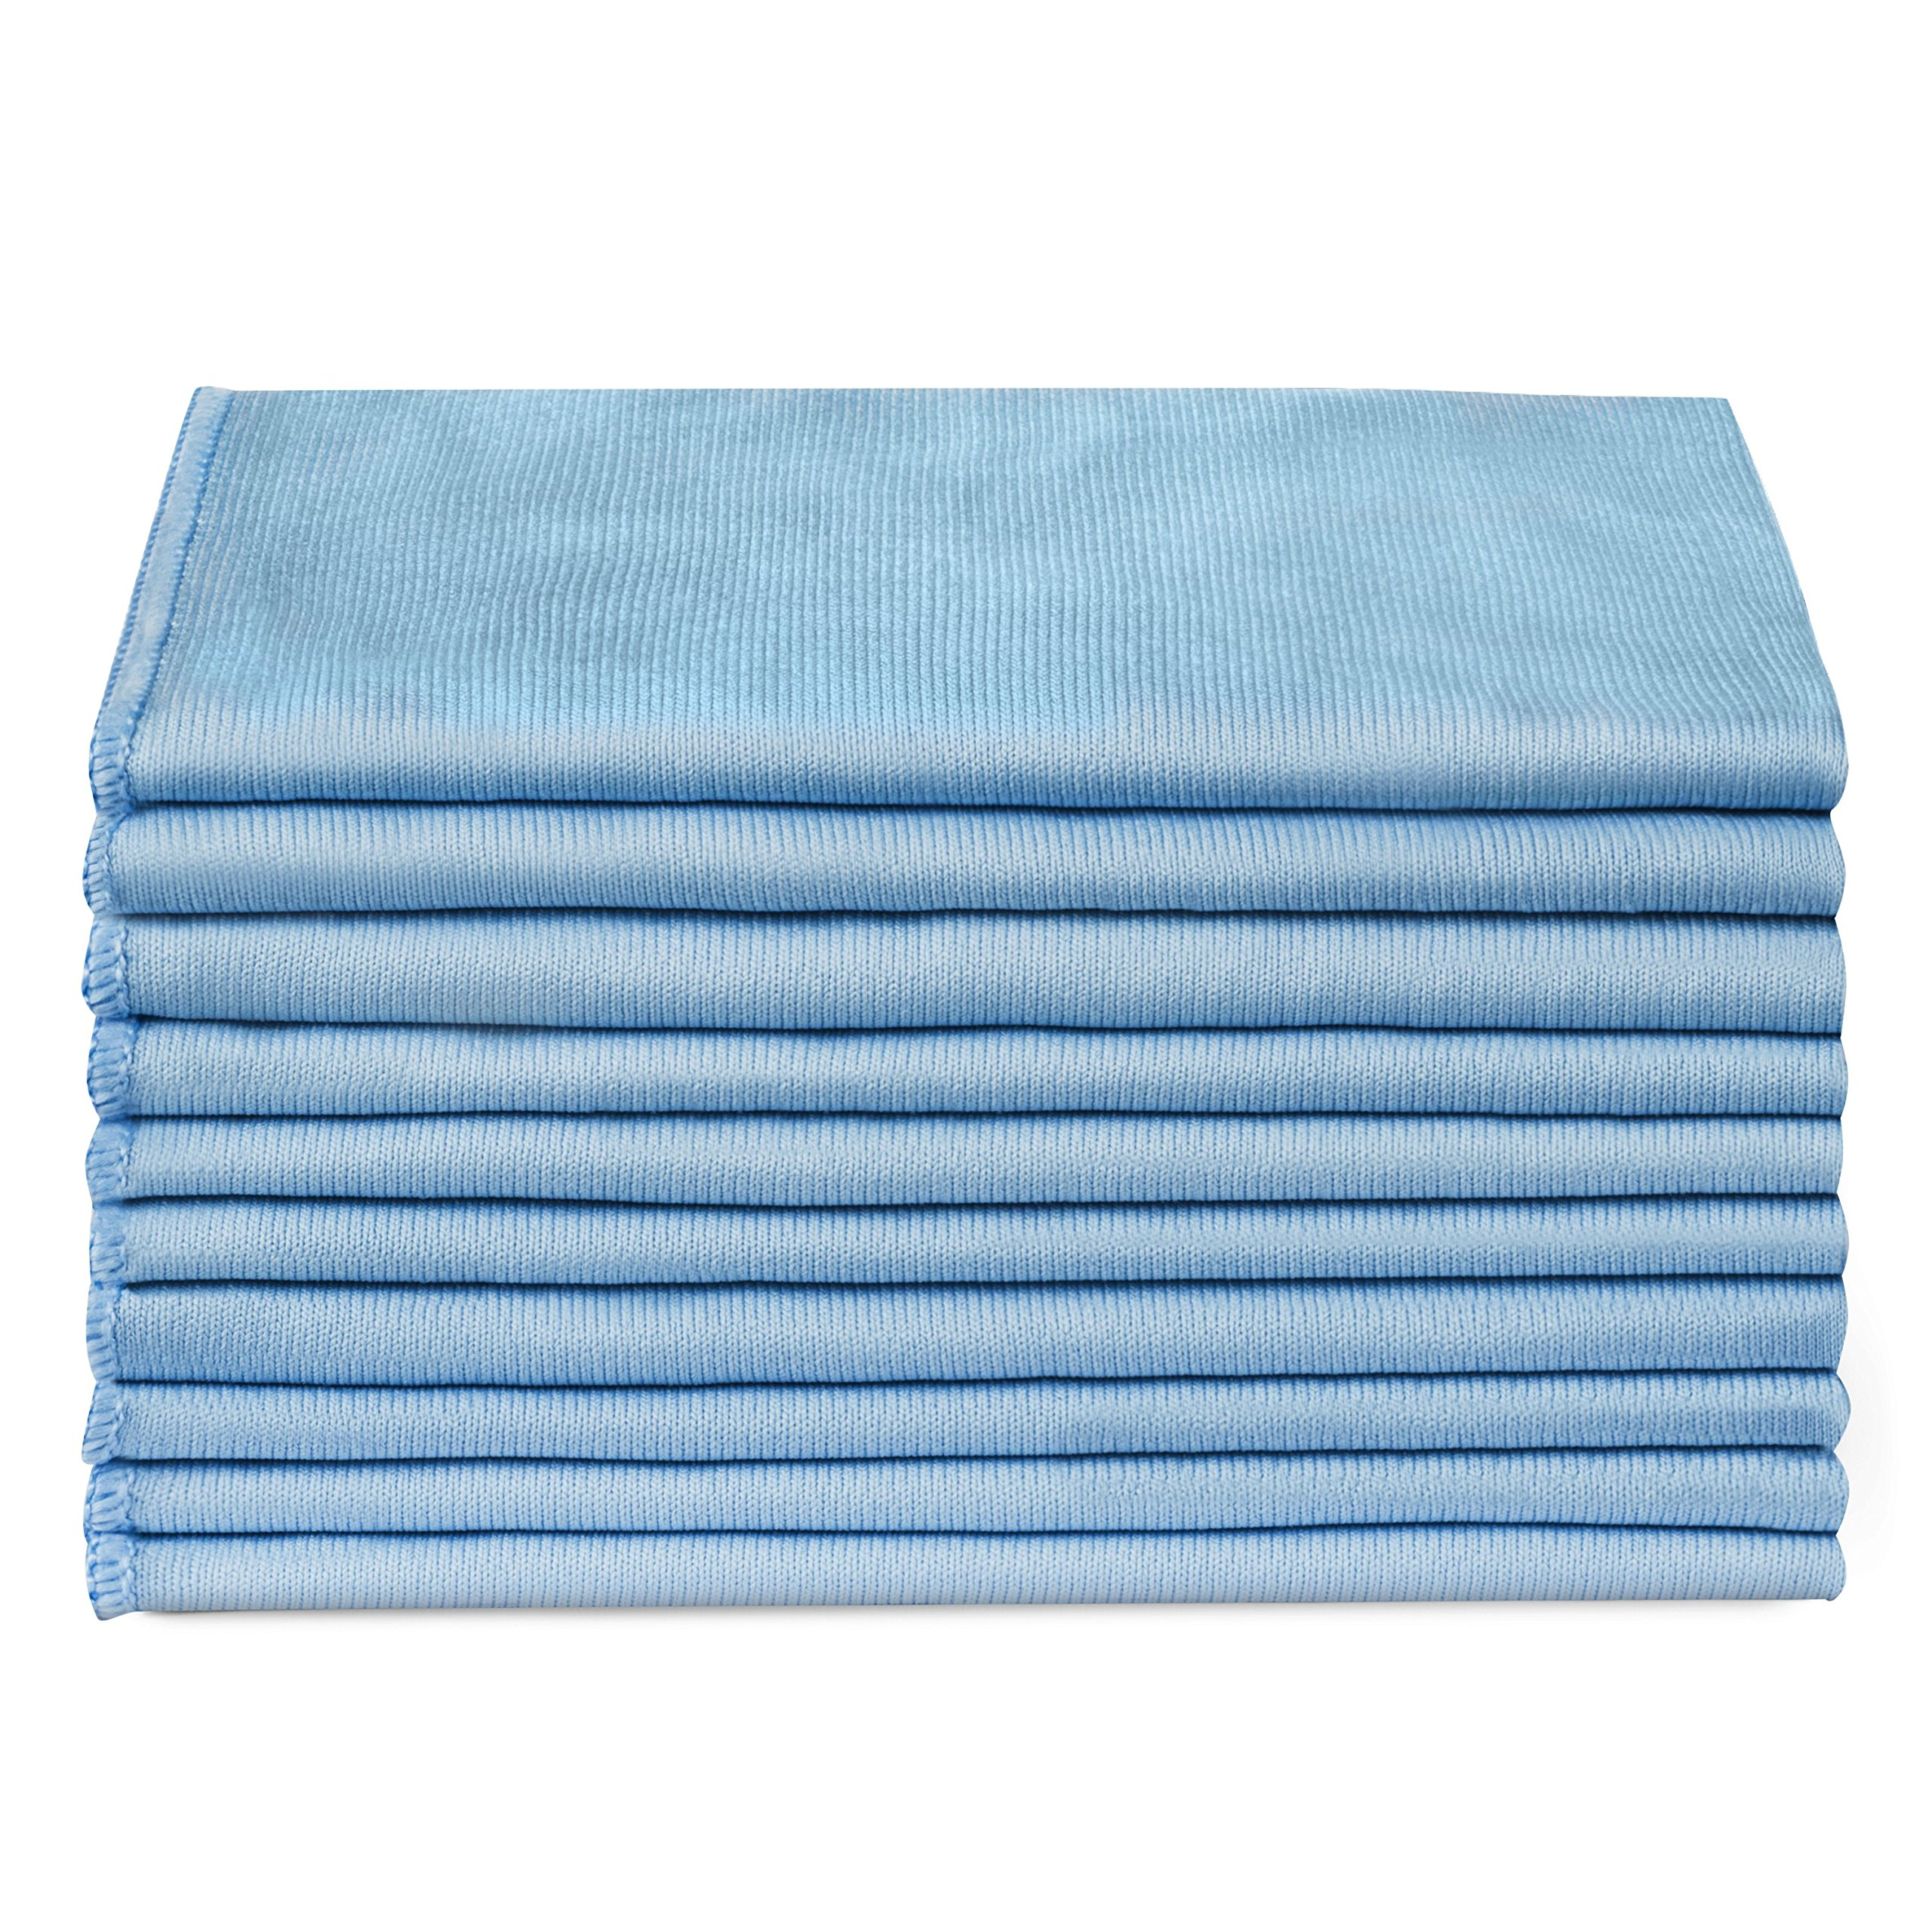 1aa64668a7c Zflow Microfiber Glass Cleaning Cloths - 8 Pack (16 x 16) - Streak Free - Lint  Free - Quickly Clean Windows